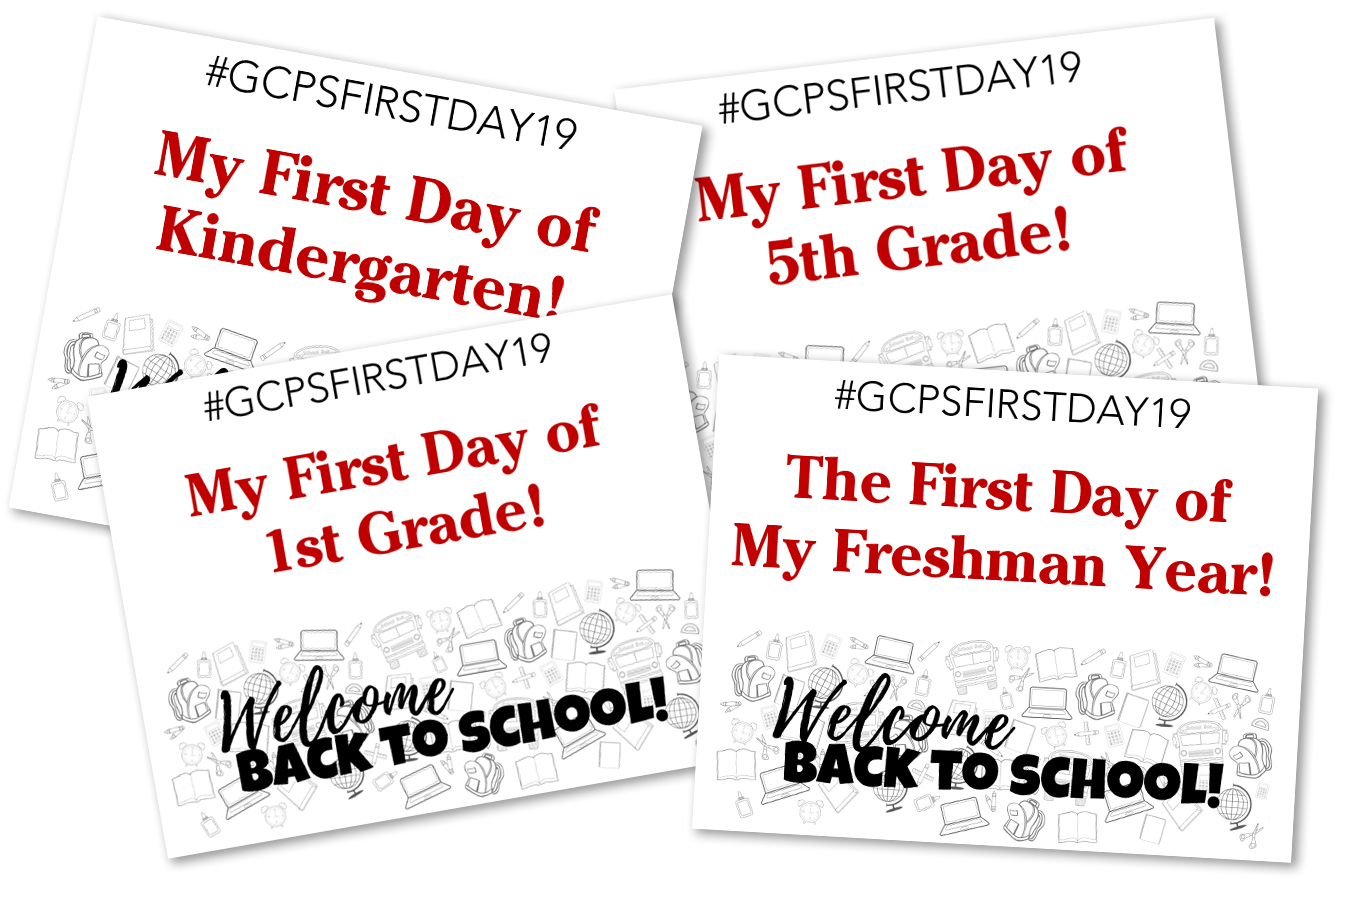 My First Day of School Signs